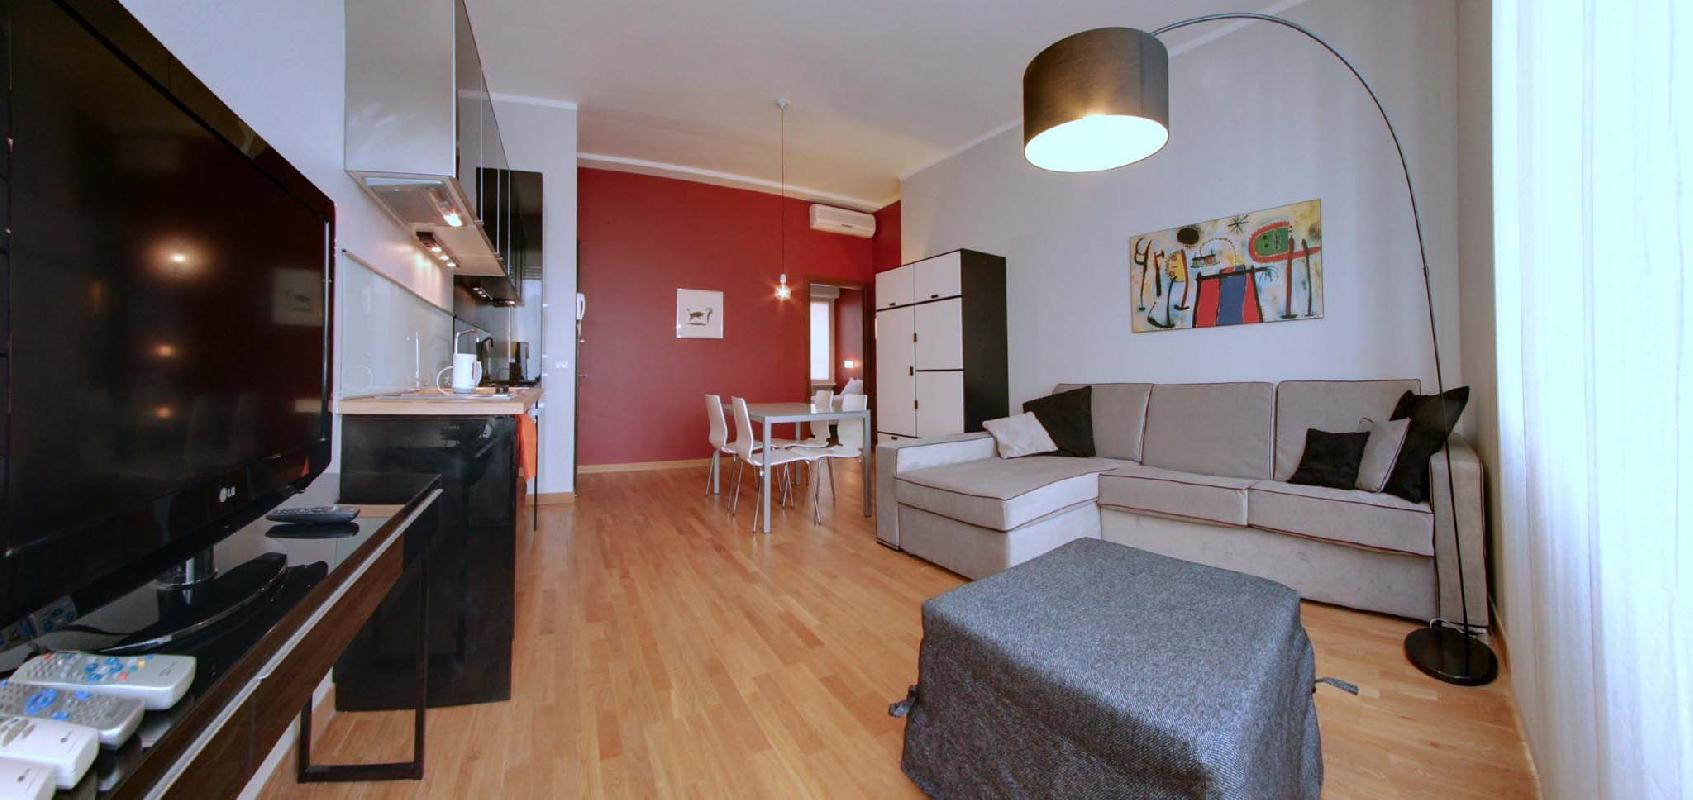 cool Milan - Apartment 4012 3BR luxury apartment and holiday home